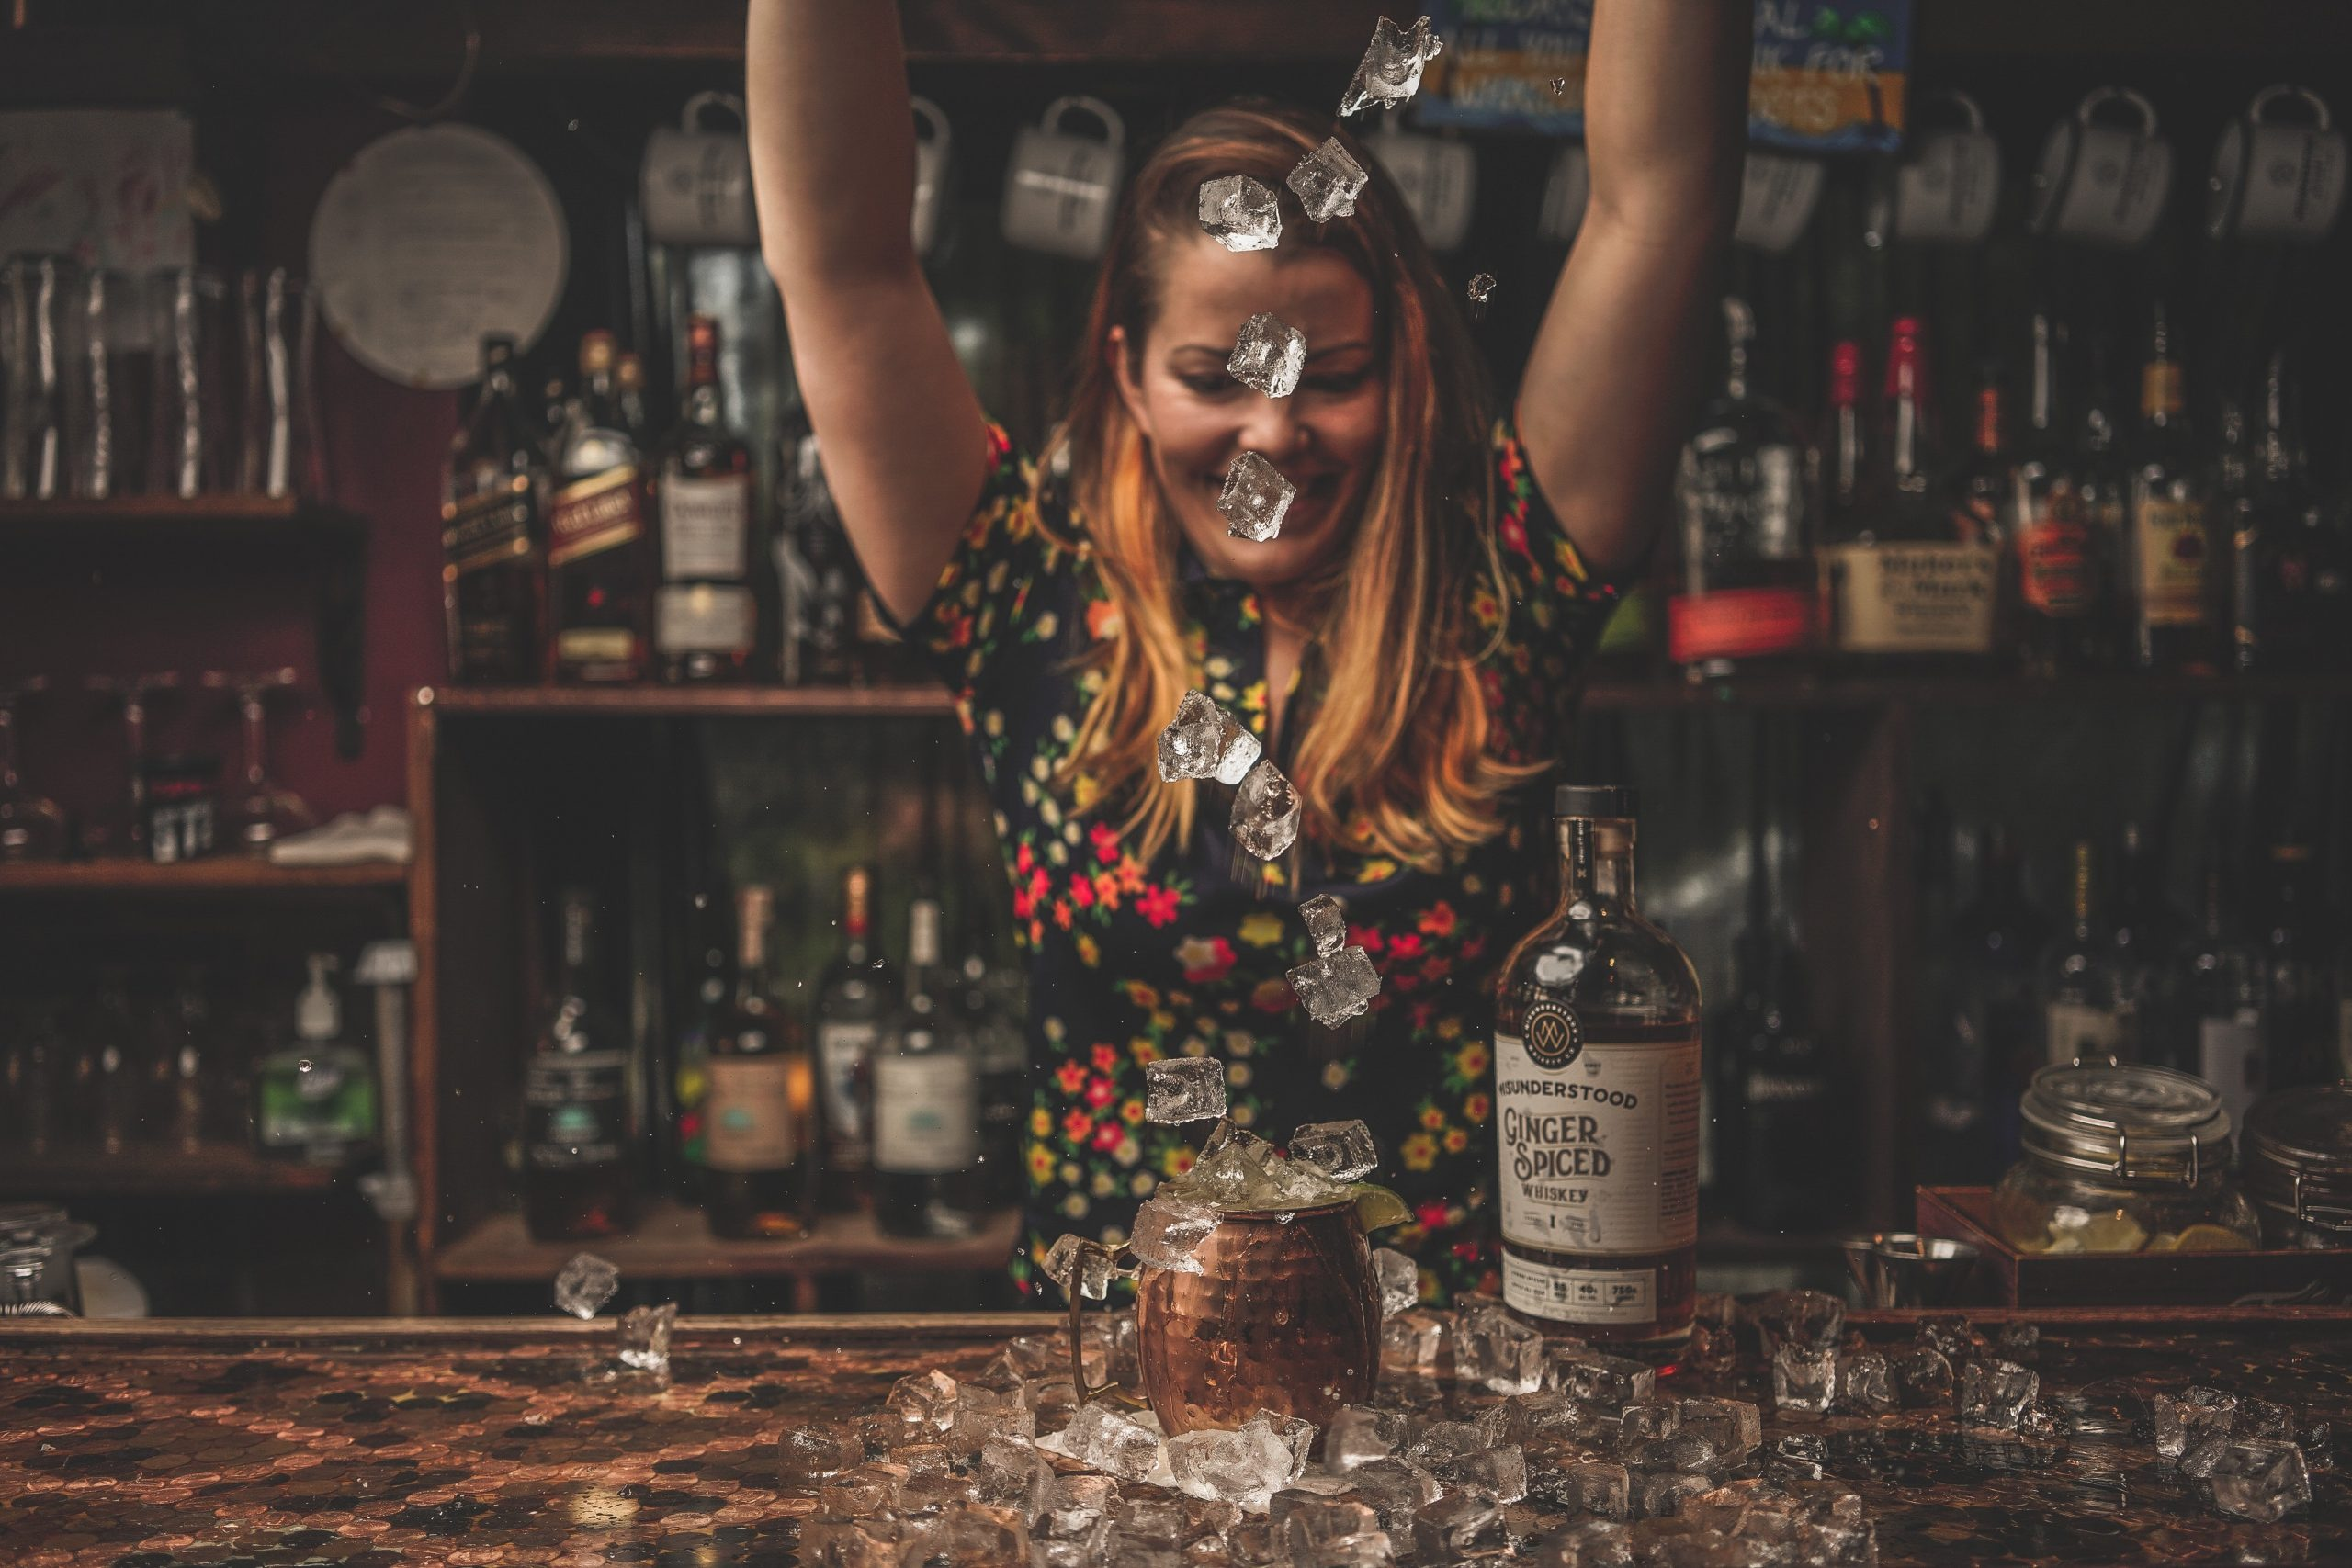 A photo of a woman throwing ice while making a Ginger cocktail.